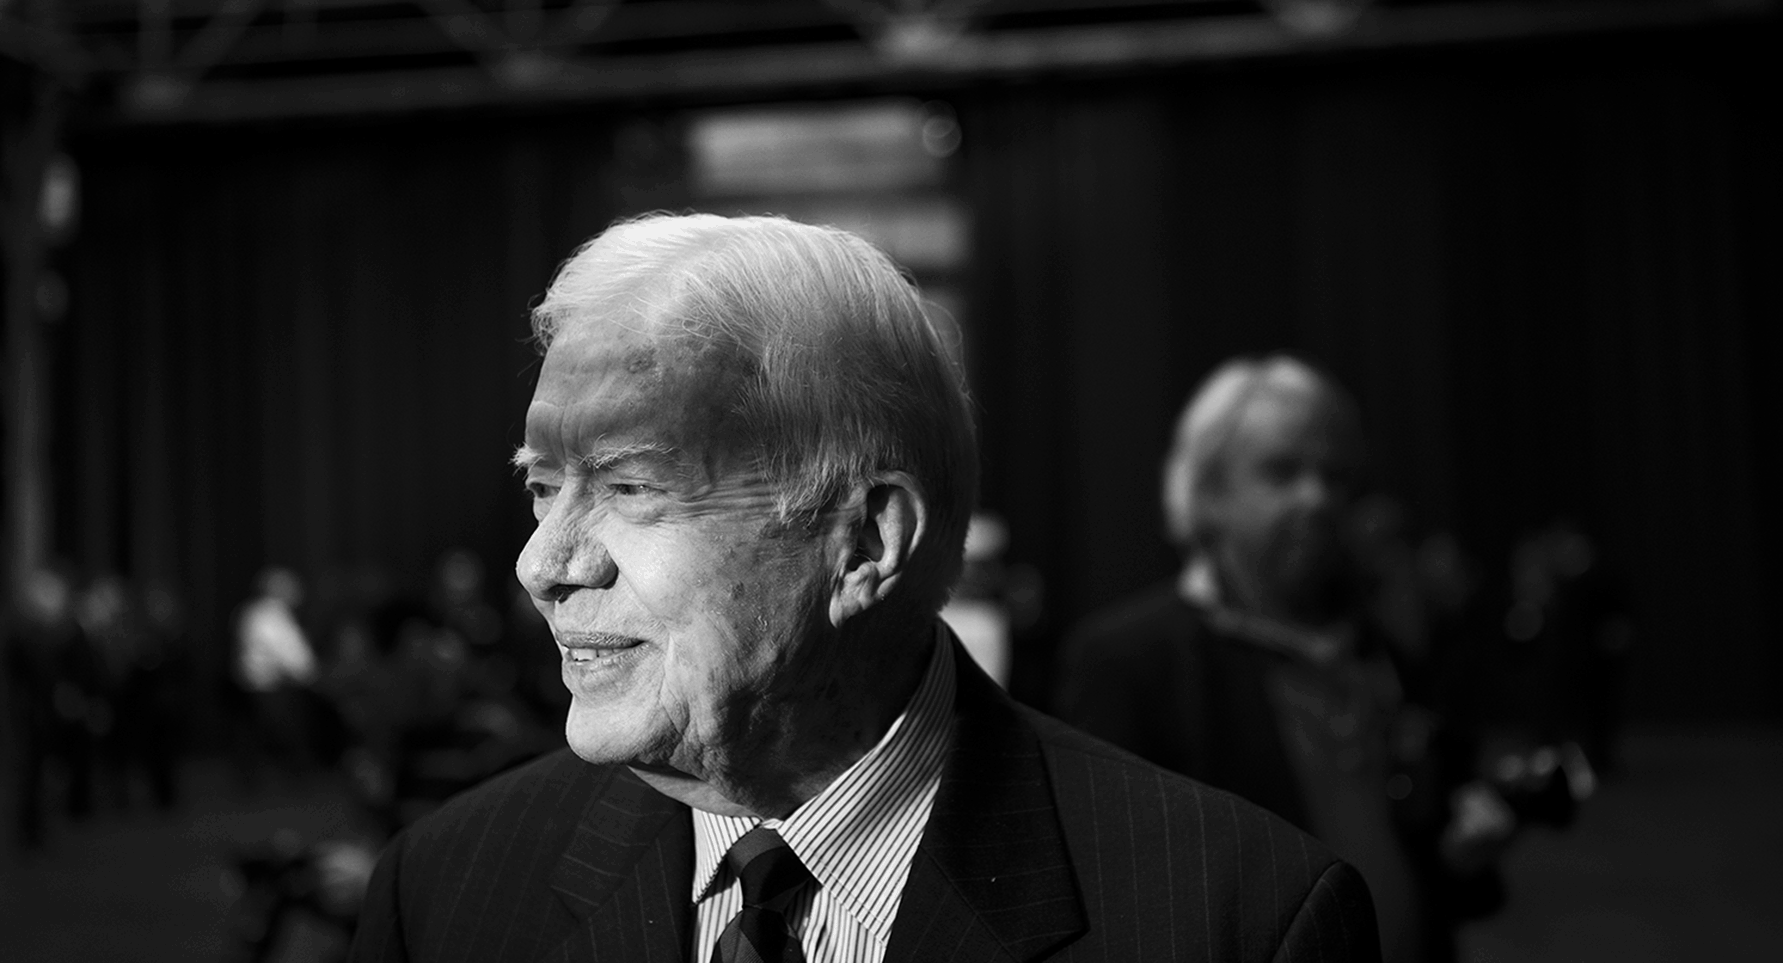 Ex-US-Präsident Jimmy Carter in Bochum 2012, Foto: Mathias Schumacher